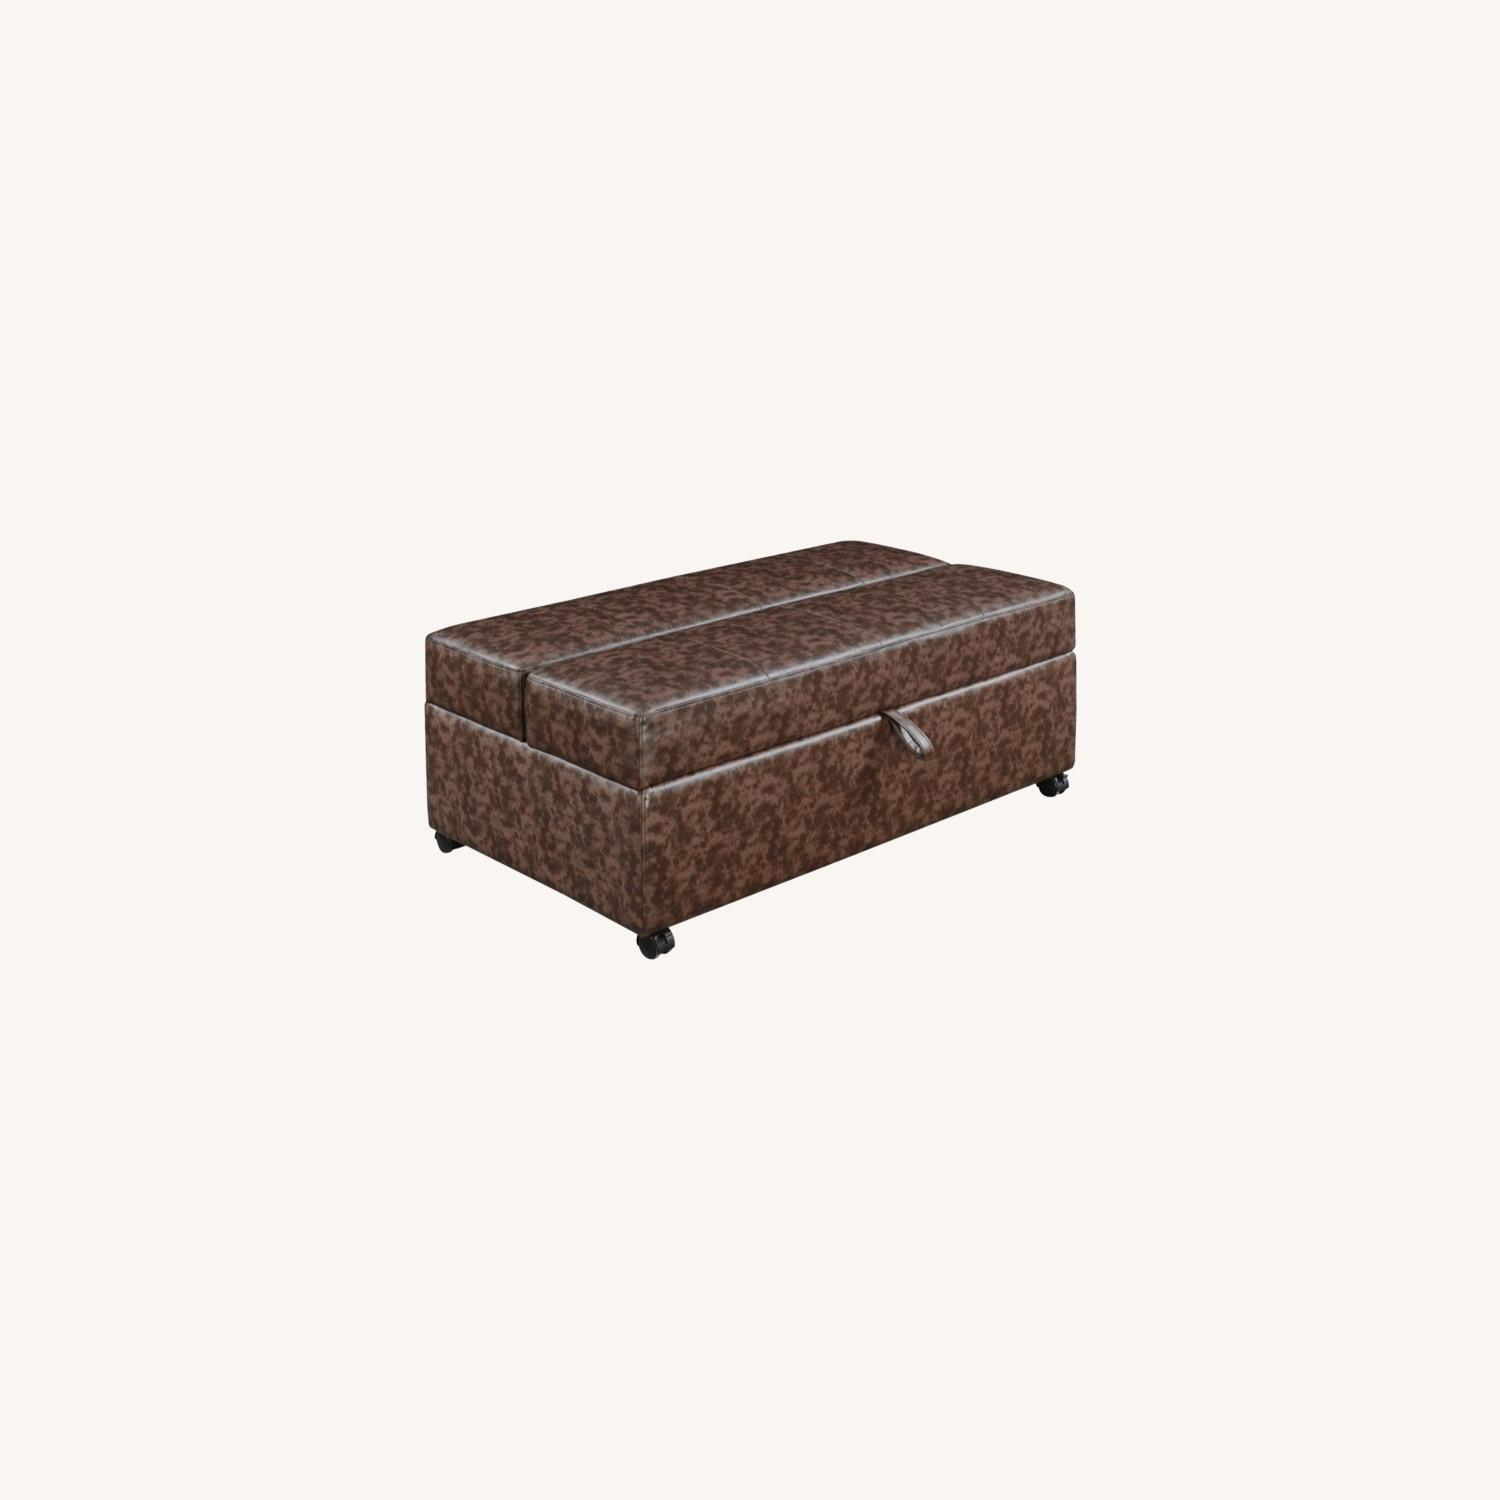 Multi-Functional Ottoman In Dark Brown Leatherette - image-6